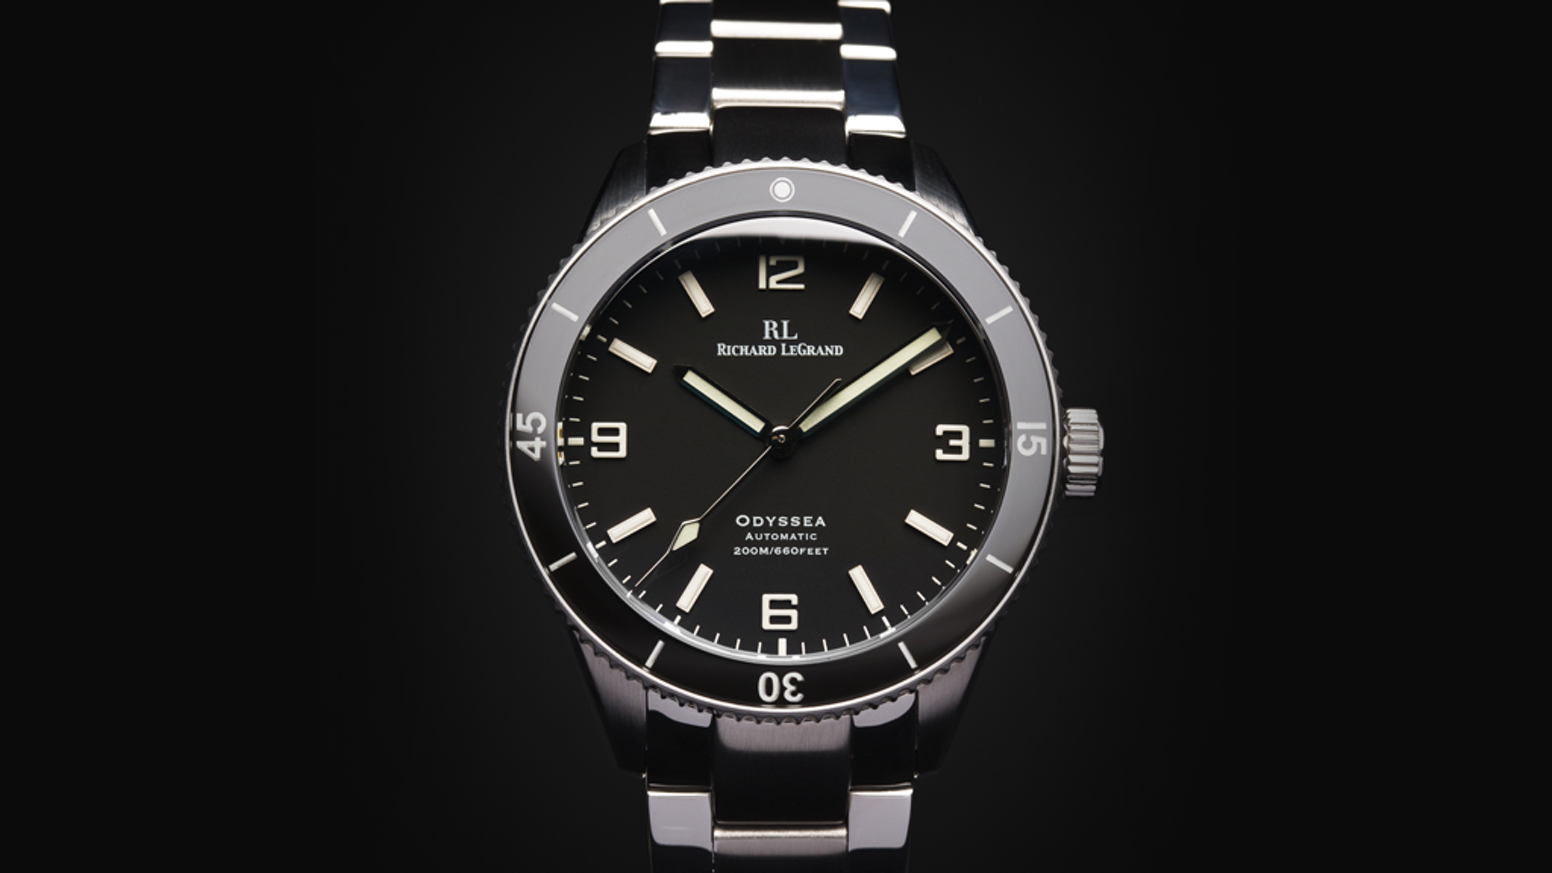 Seiko automatic movement. Sapphire Crystal dial window and bezel overlay.  200m depth of water dfbab9bf9418